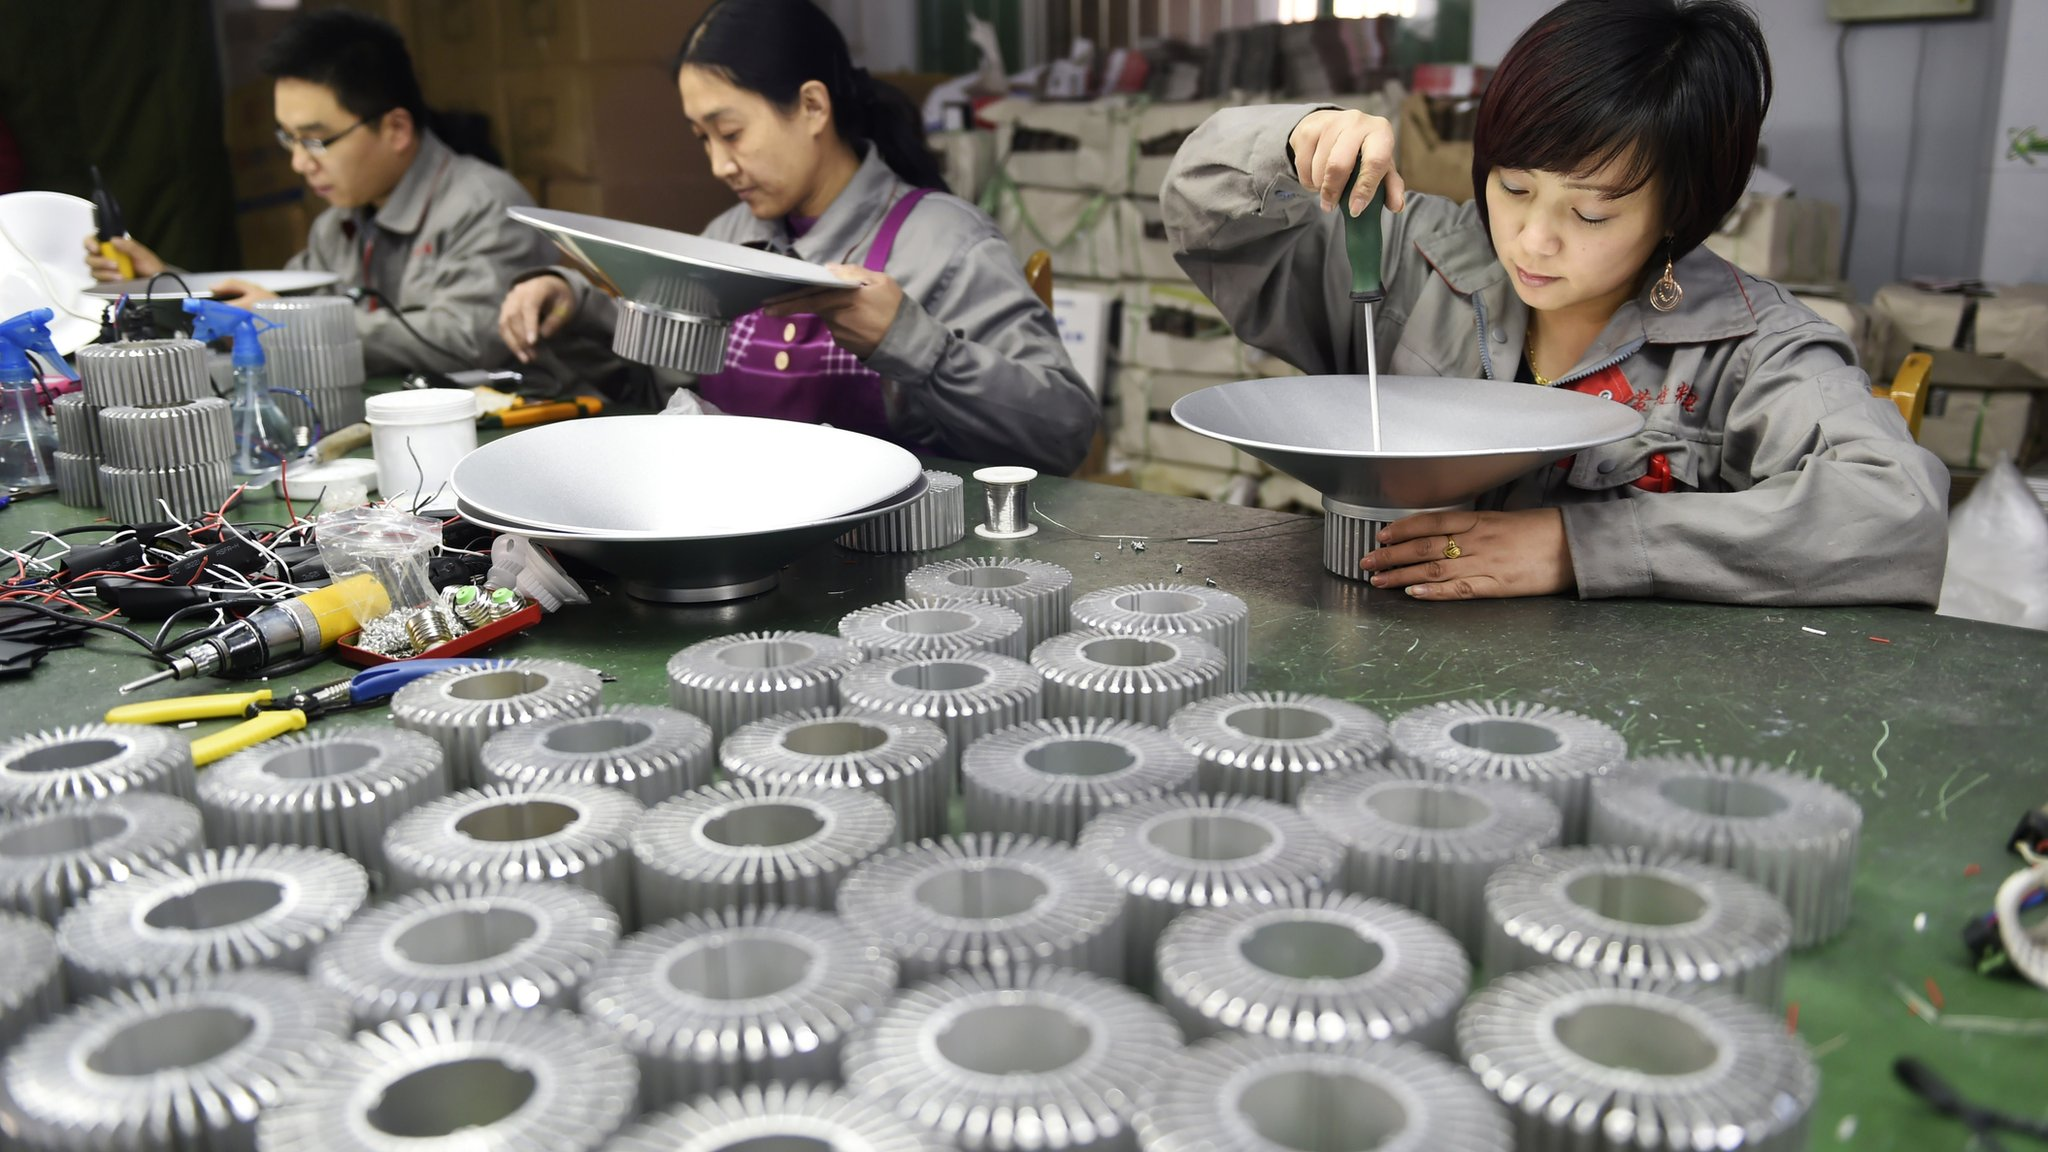 Factory activity in the world's second largest economy, China, shrank the most in two years in July as new orders fell more than expected.